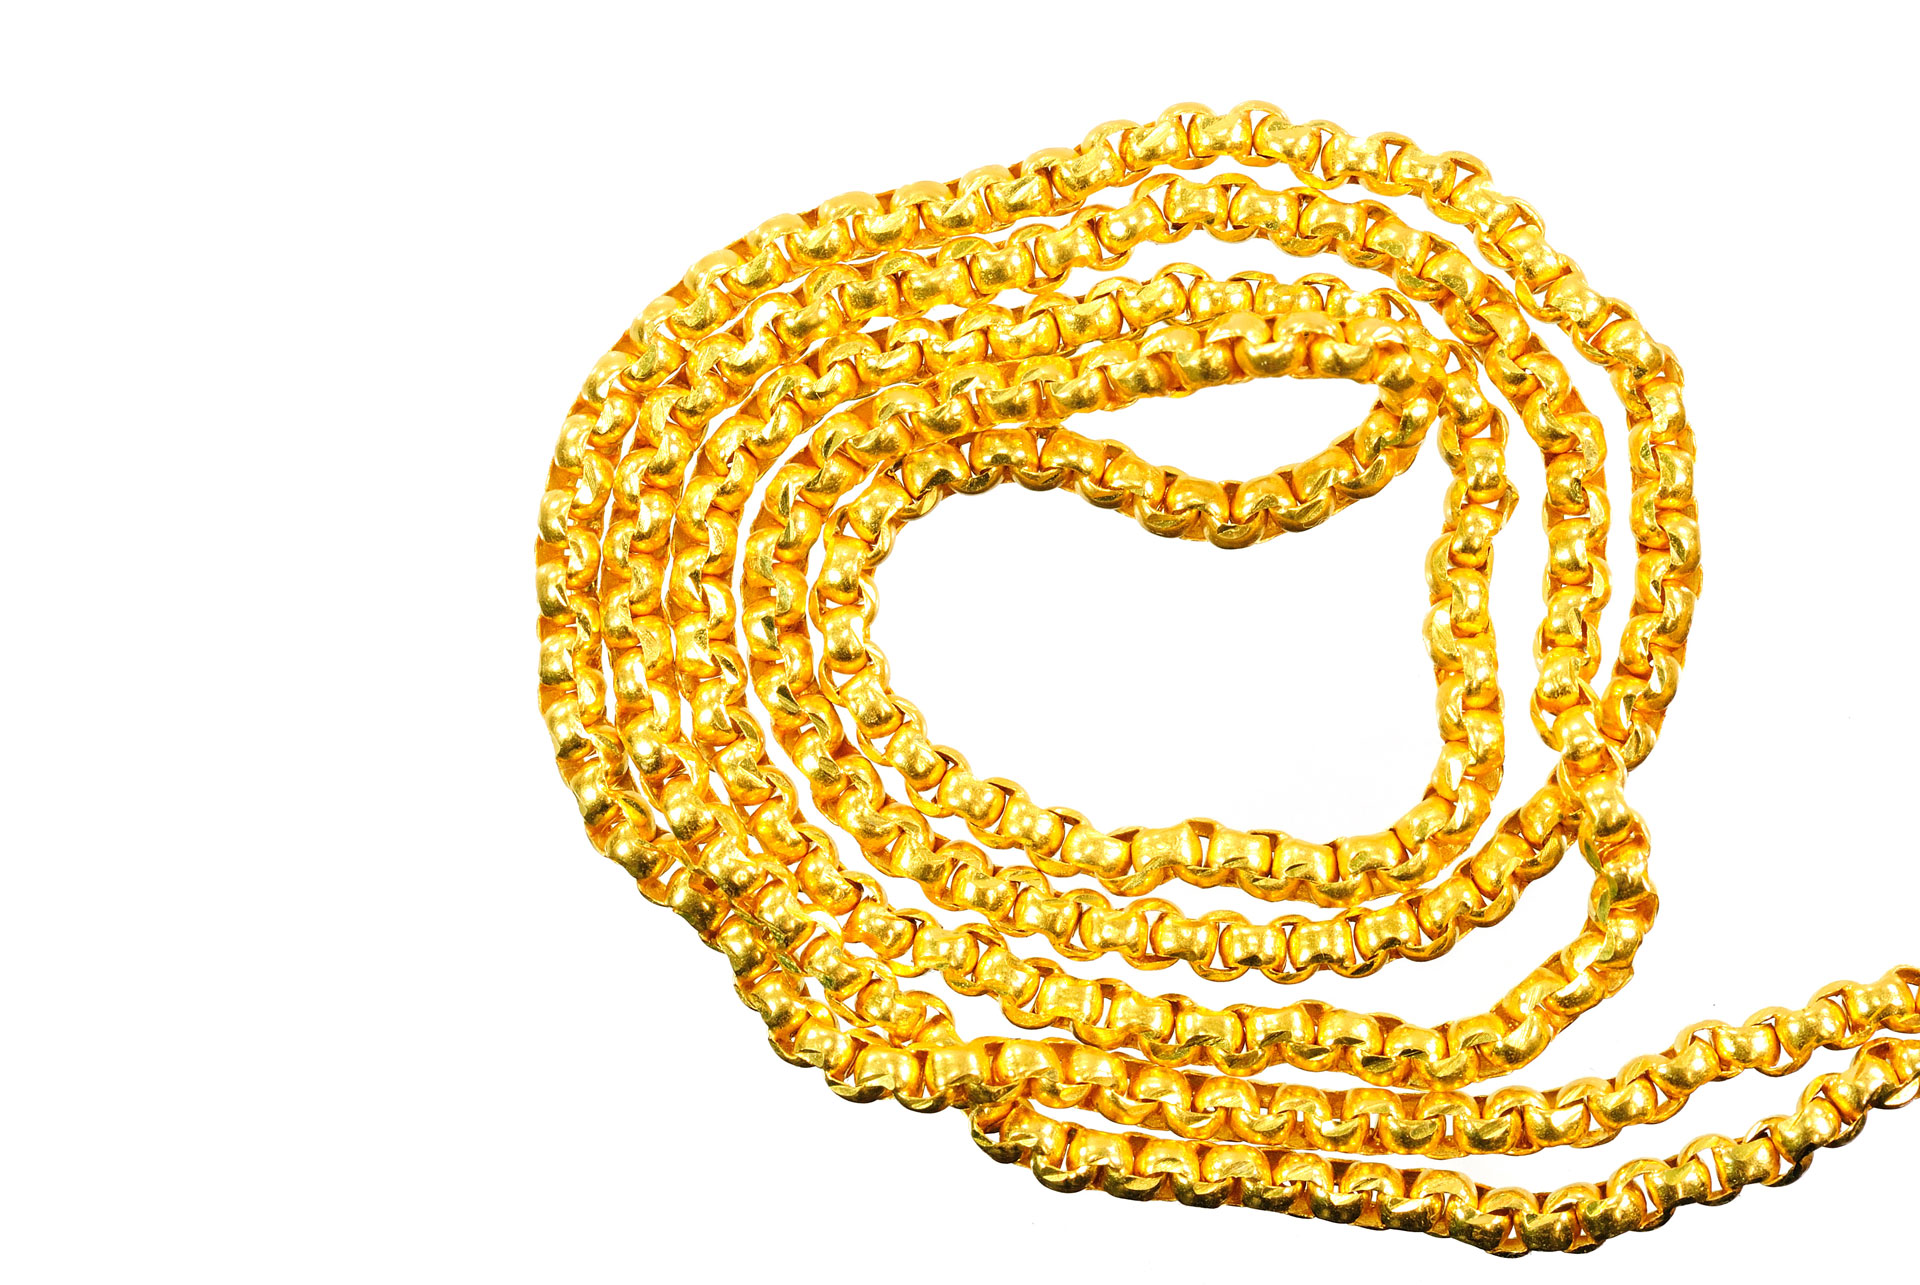 Gold necklace placed in a spiral shape